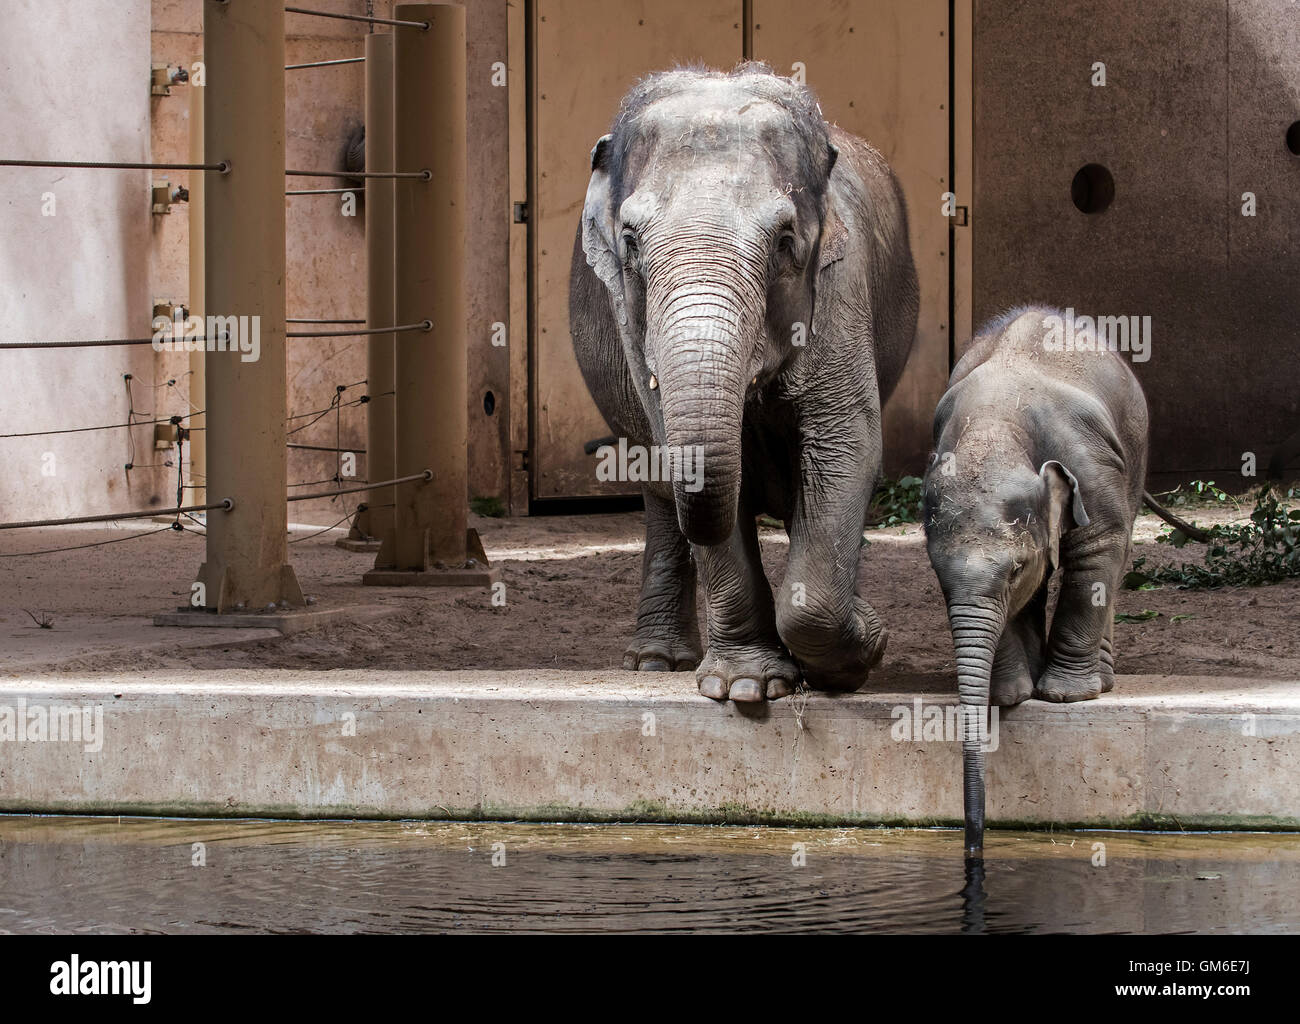 Asian elephant (Elephas maximus) female with young drinking water in indoor enclosure in the Planckendael Zoo, Belgium - Stock Image